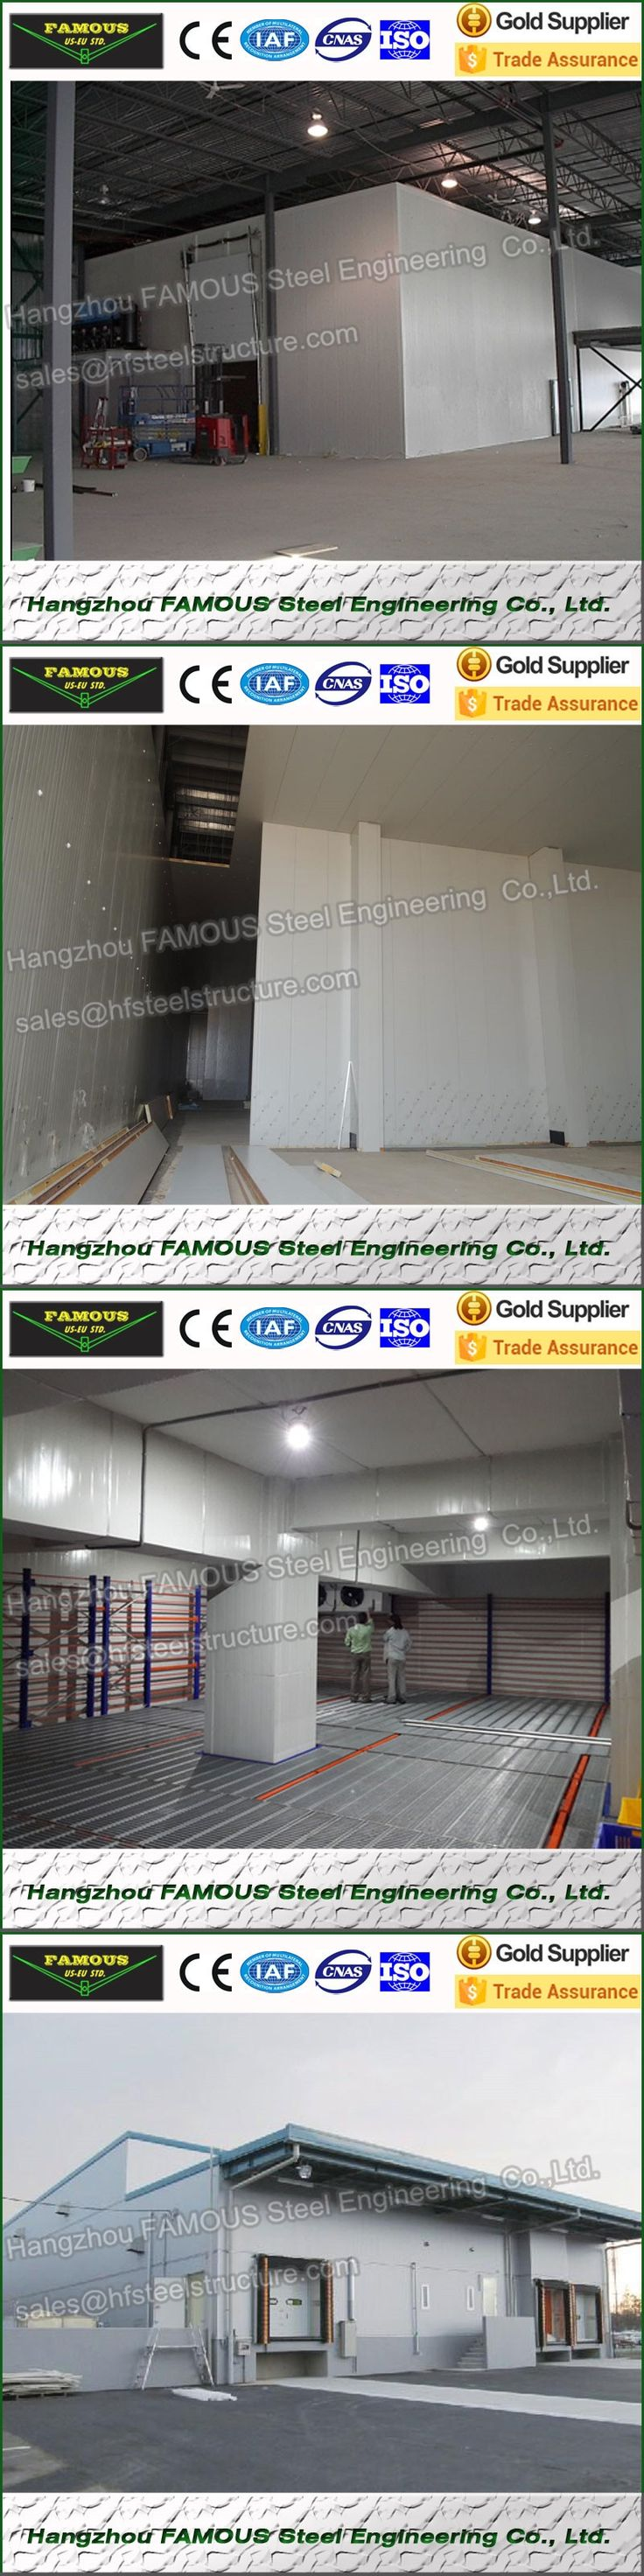 China manufacture industrial blast freezers, refrigeration freezing cold room for vegetables, cold room panel price and cooler